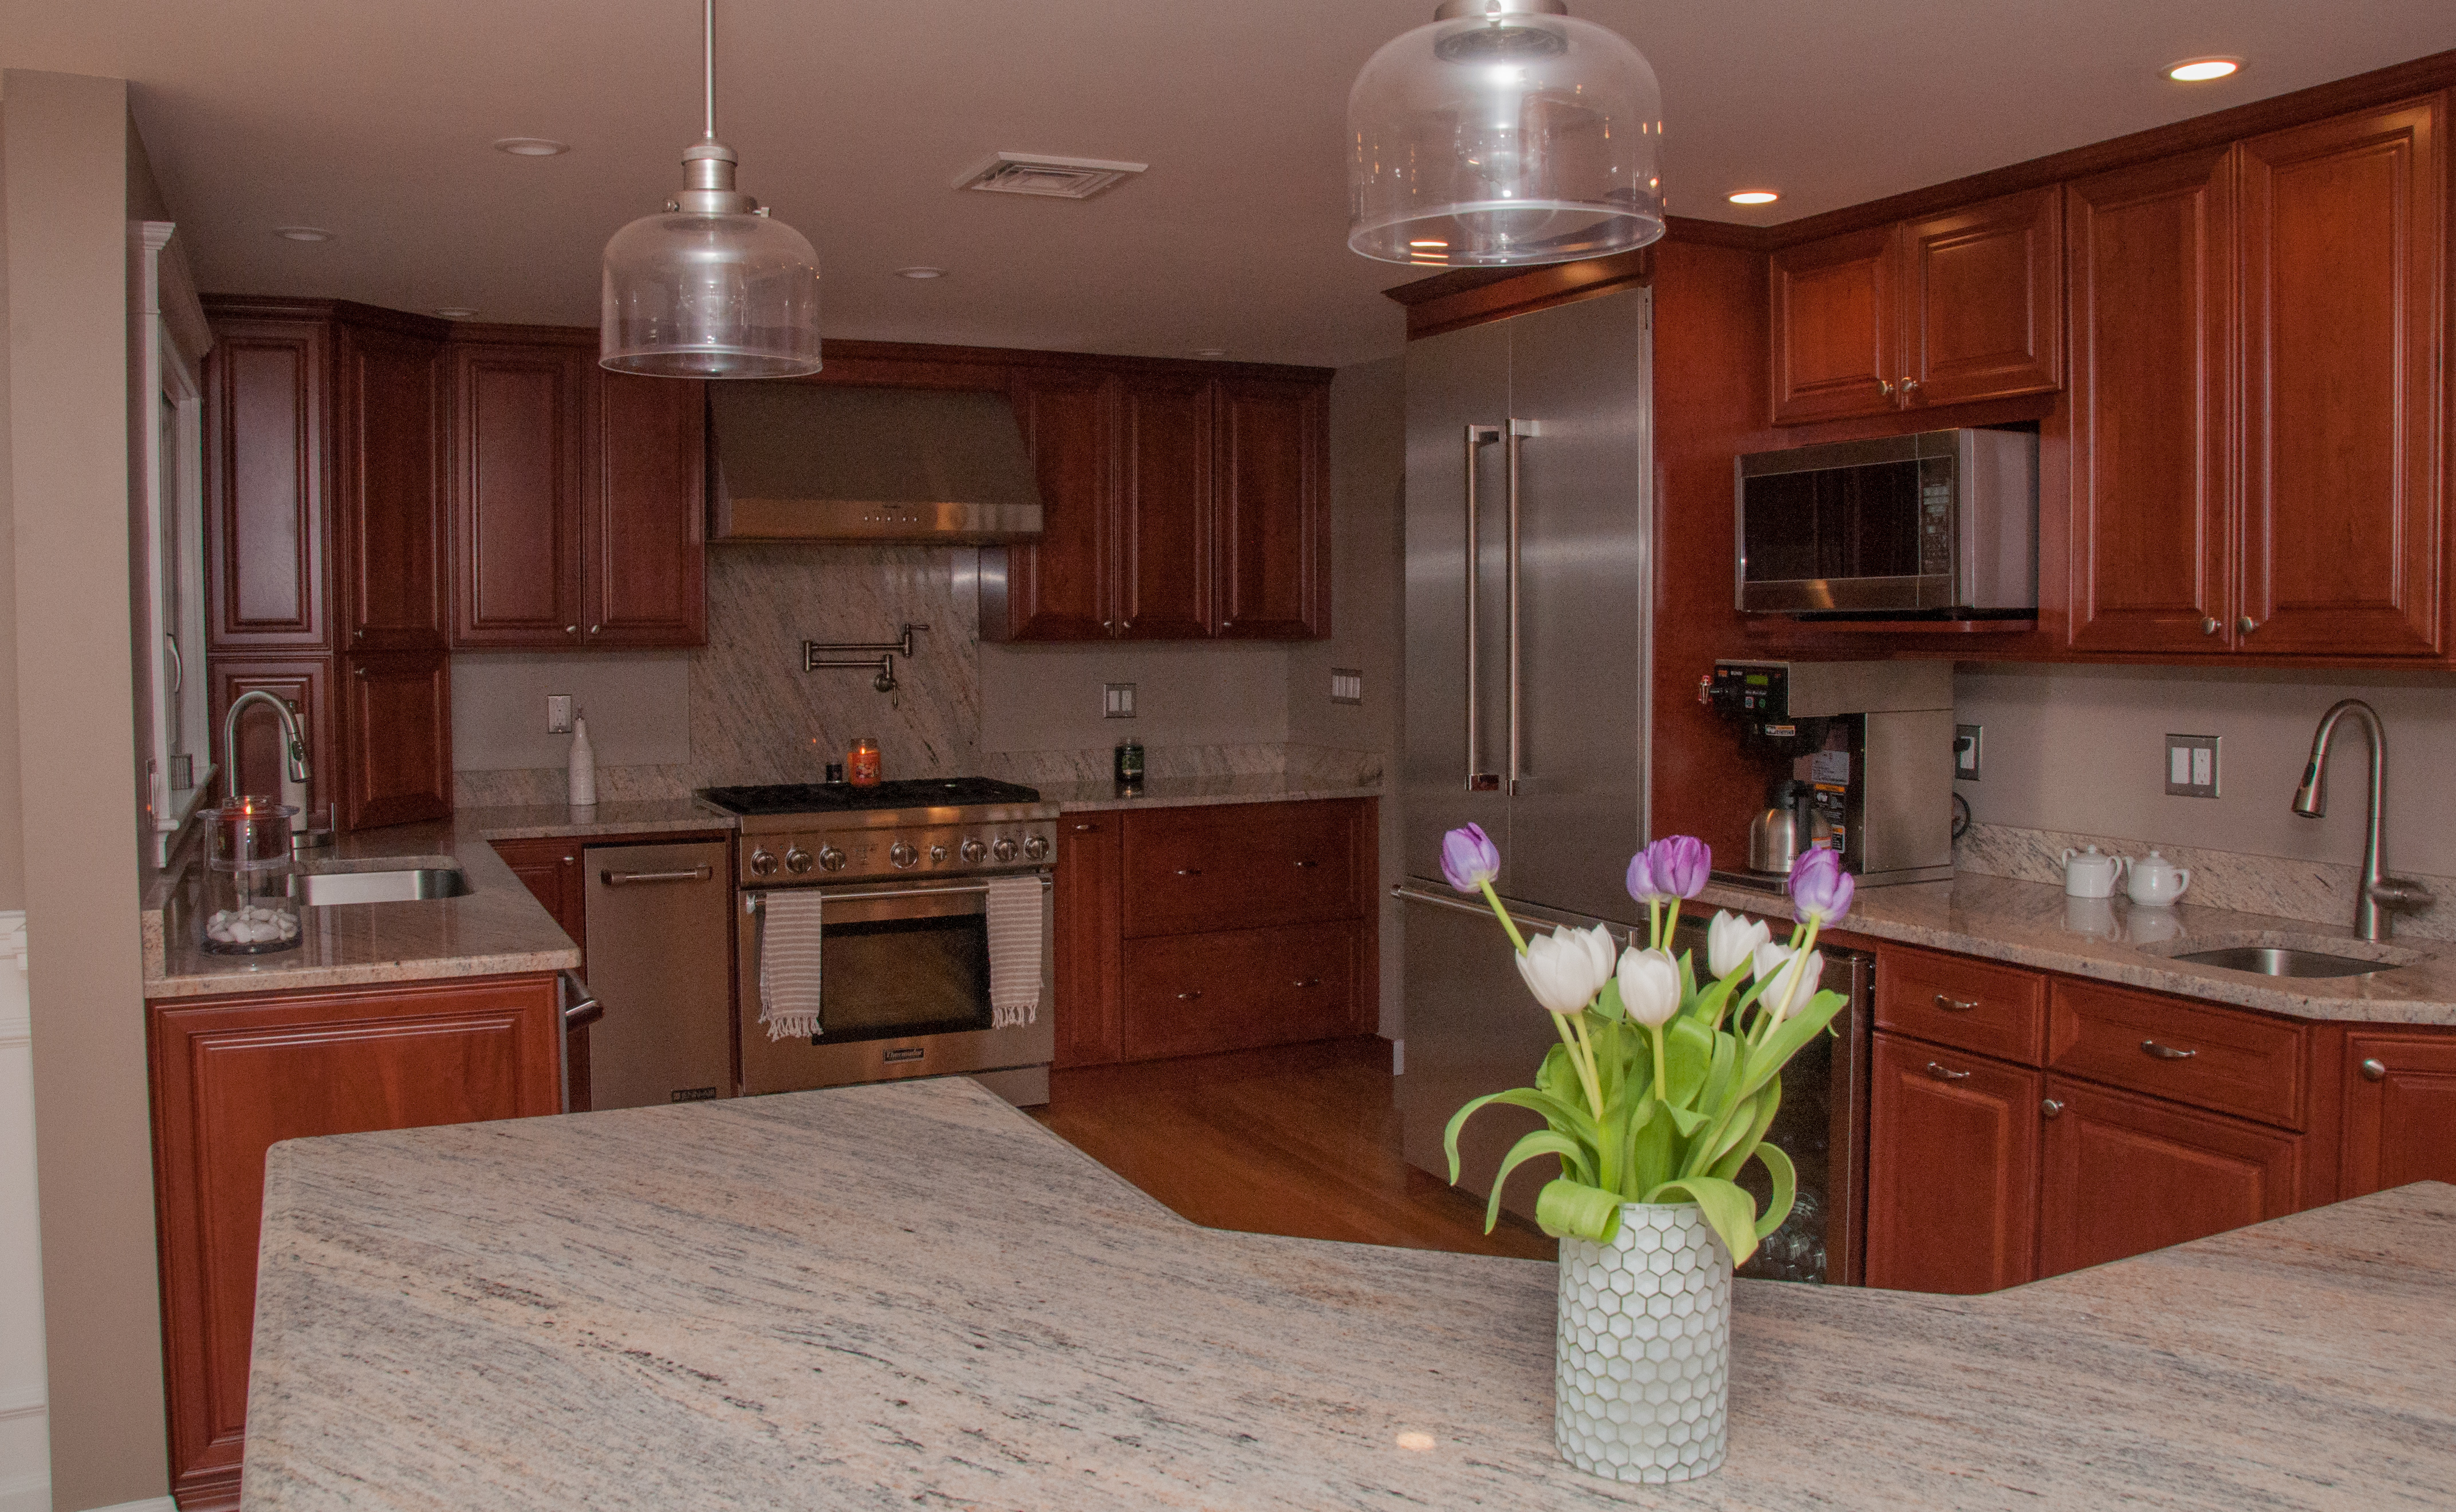 Open vs. Closed Kitchen Styles – Which Is Better for you?